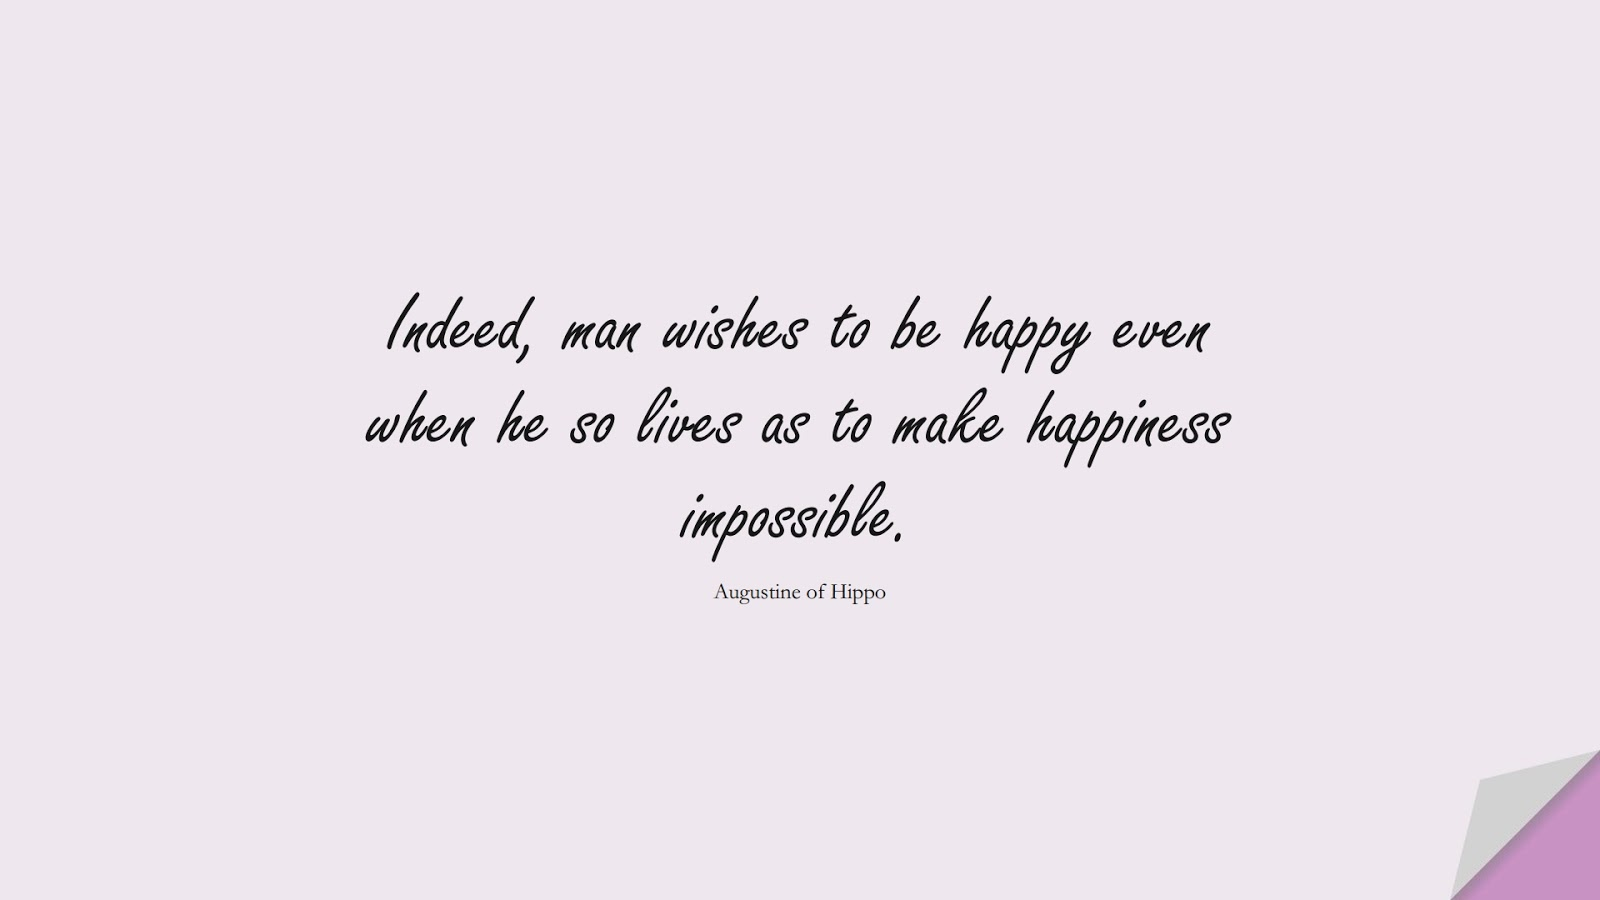 Indeed, man wishes to be happy even when he so lives as to make happiness impossible. (Augustine of Hippo);  #HappinessQuotes